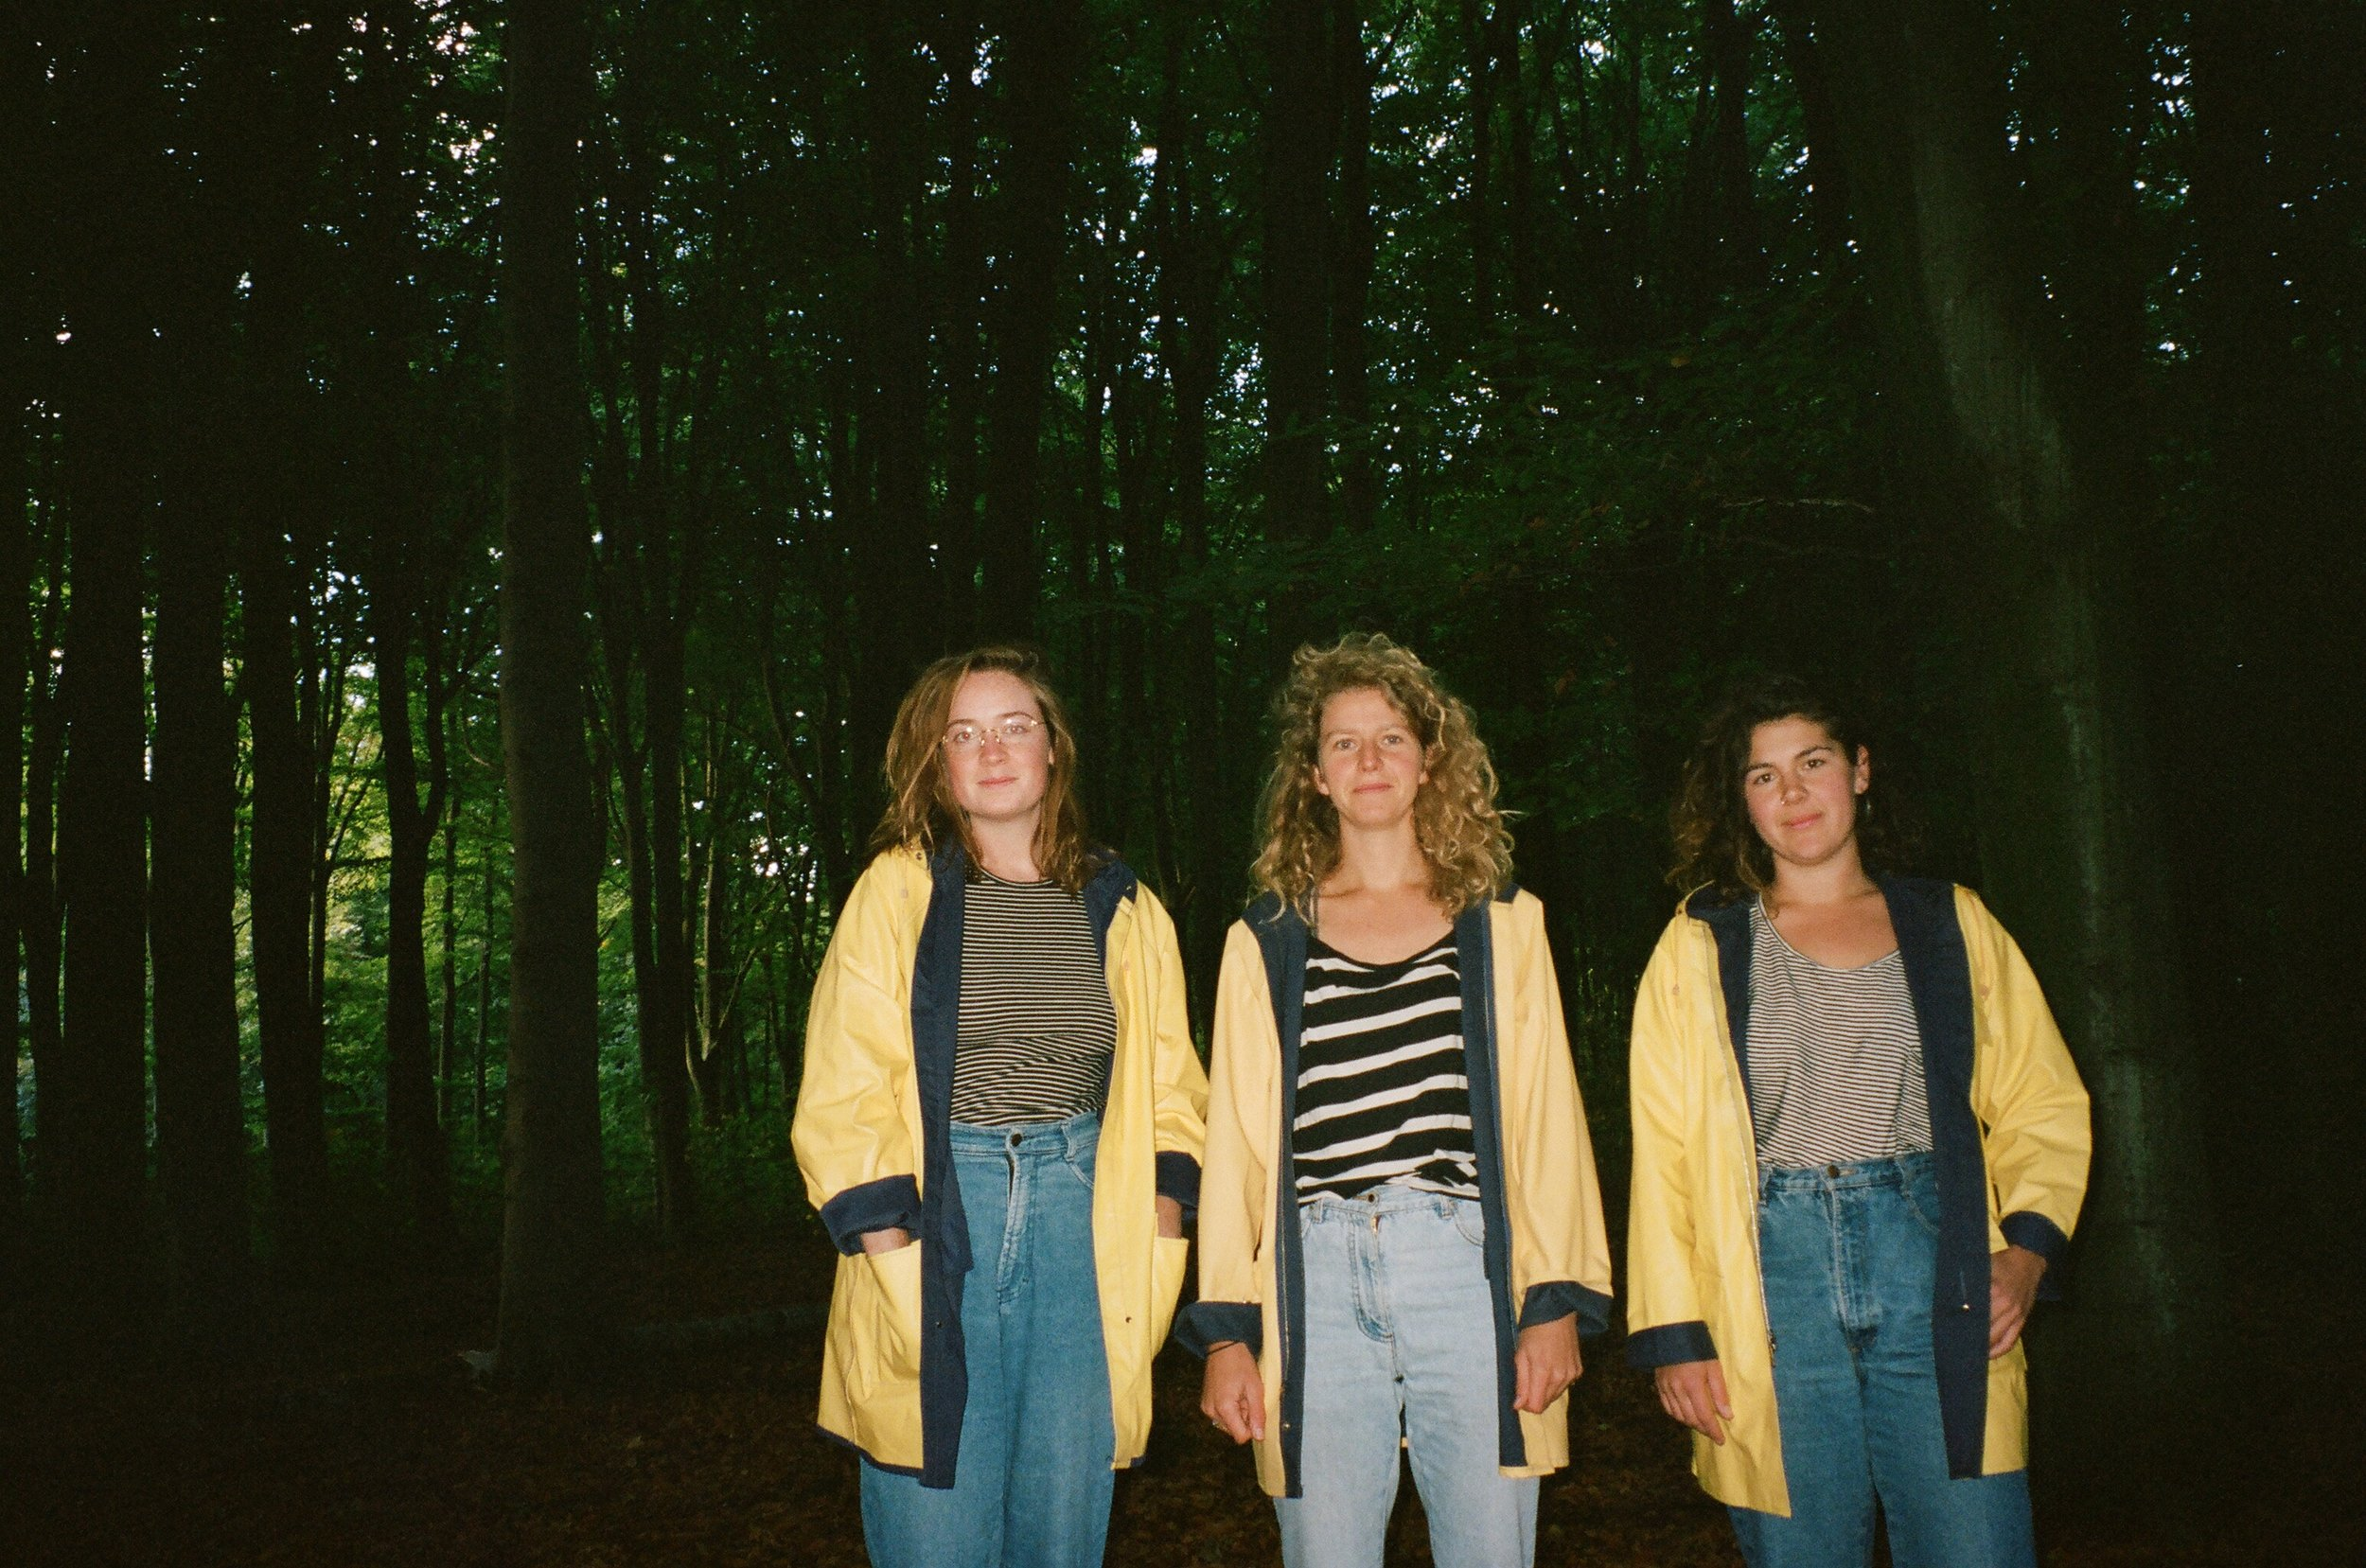 co-founders in yellow: Haley Roeser, Renée Miles, and Eleanor Arkin